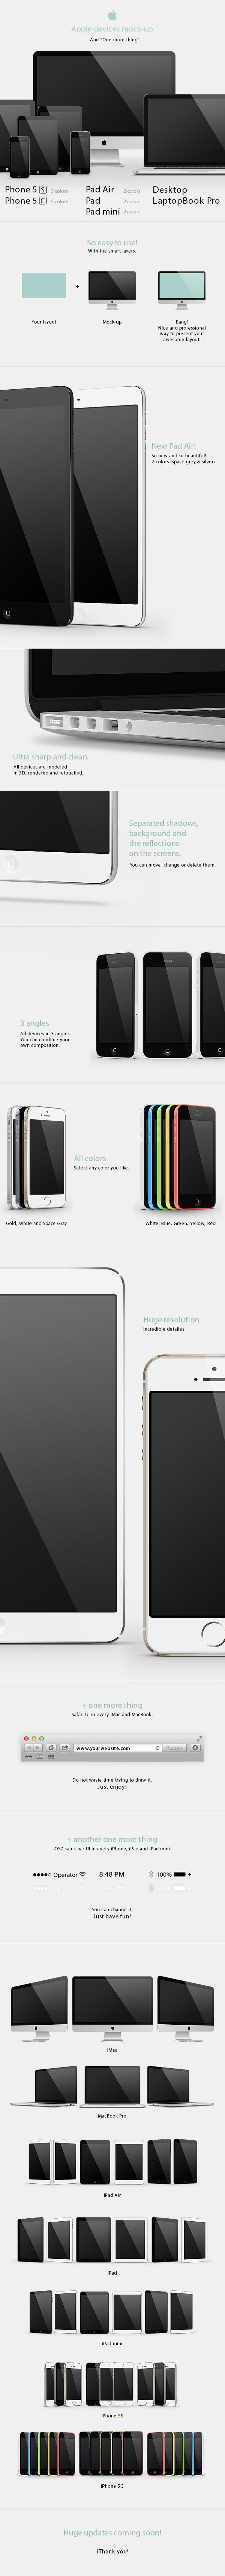 Apple devices #mockup on Behance